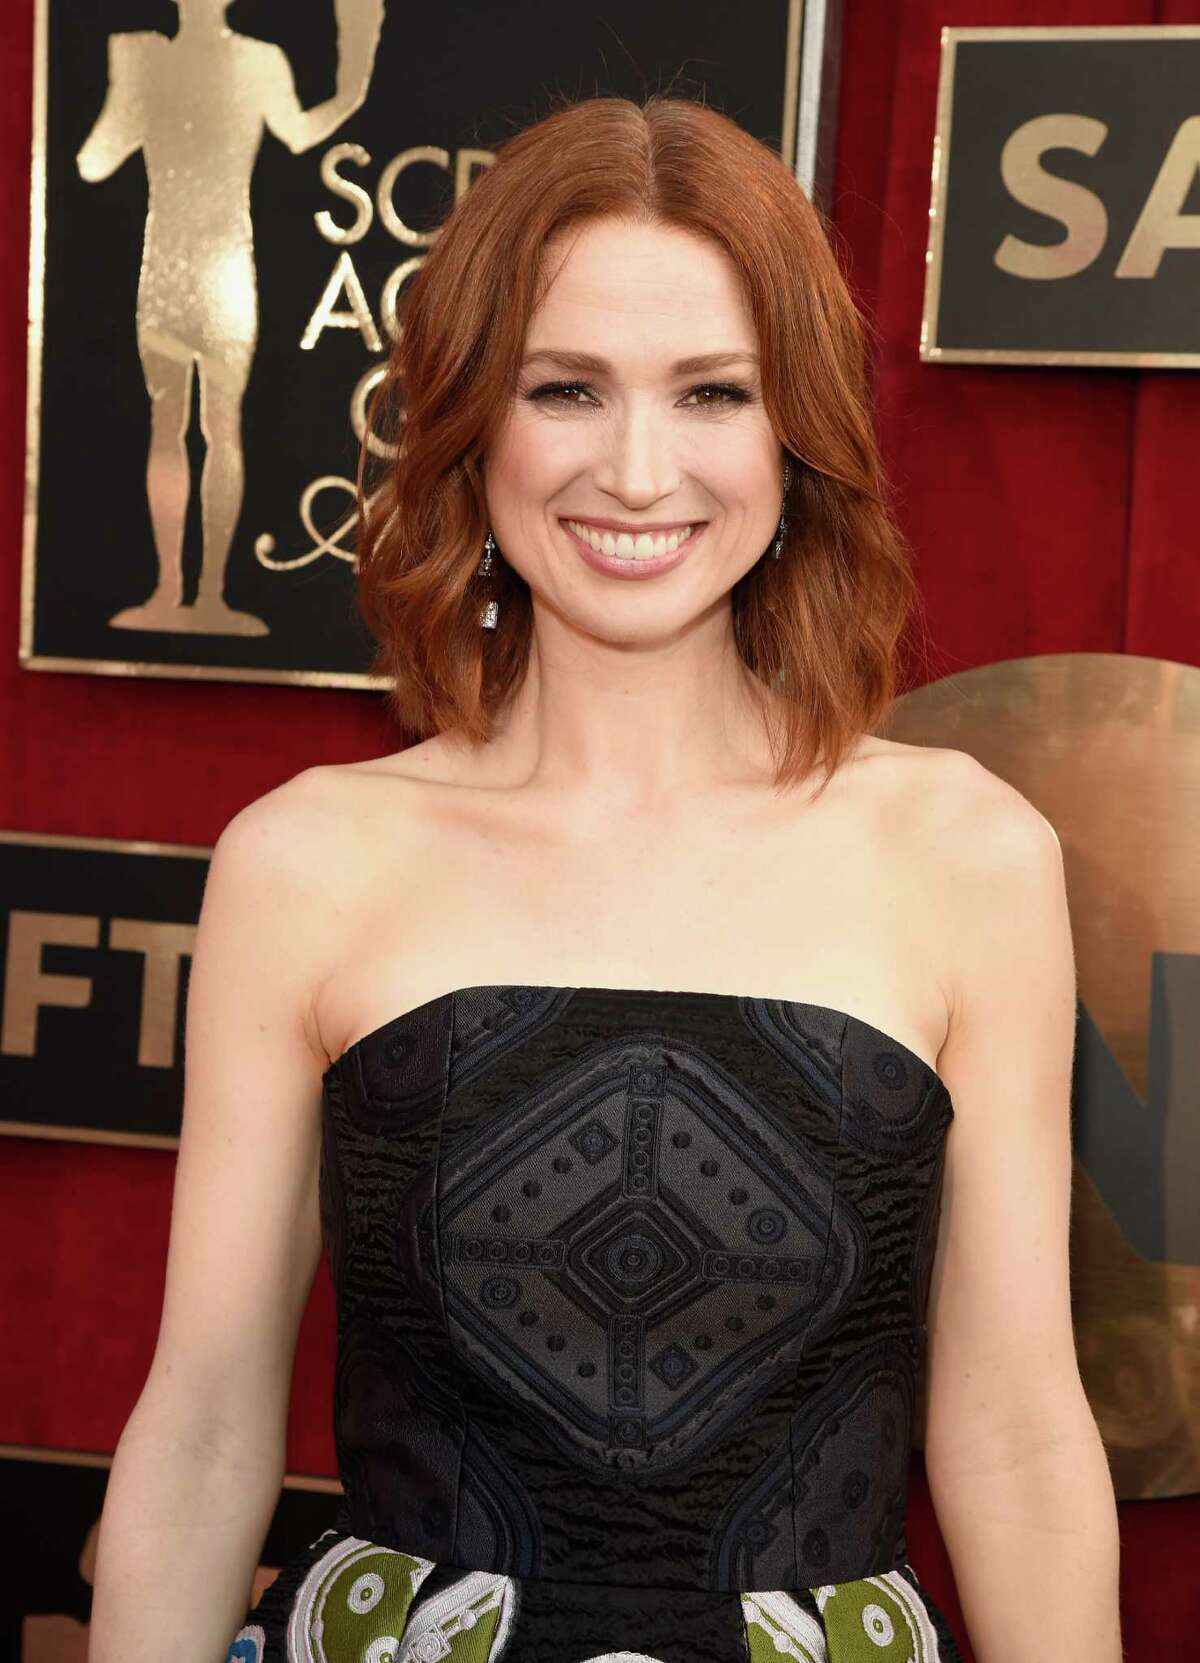 Ellie Kemper attends The 22nd Annual Screen Actors Guild Awards at The Shrine Auditorium on January 30, 2016 in Los Angeles, California. 25650_012